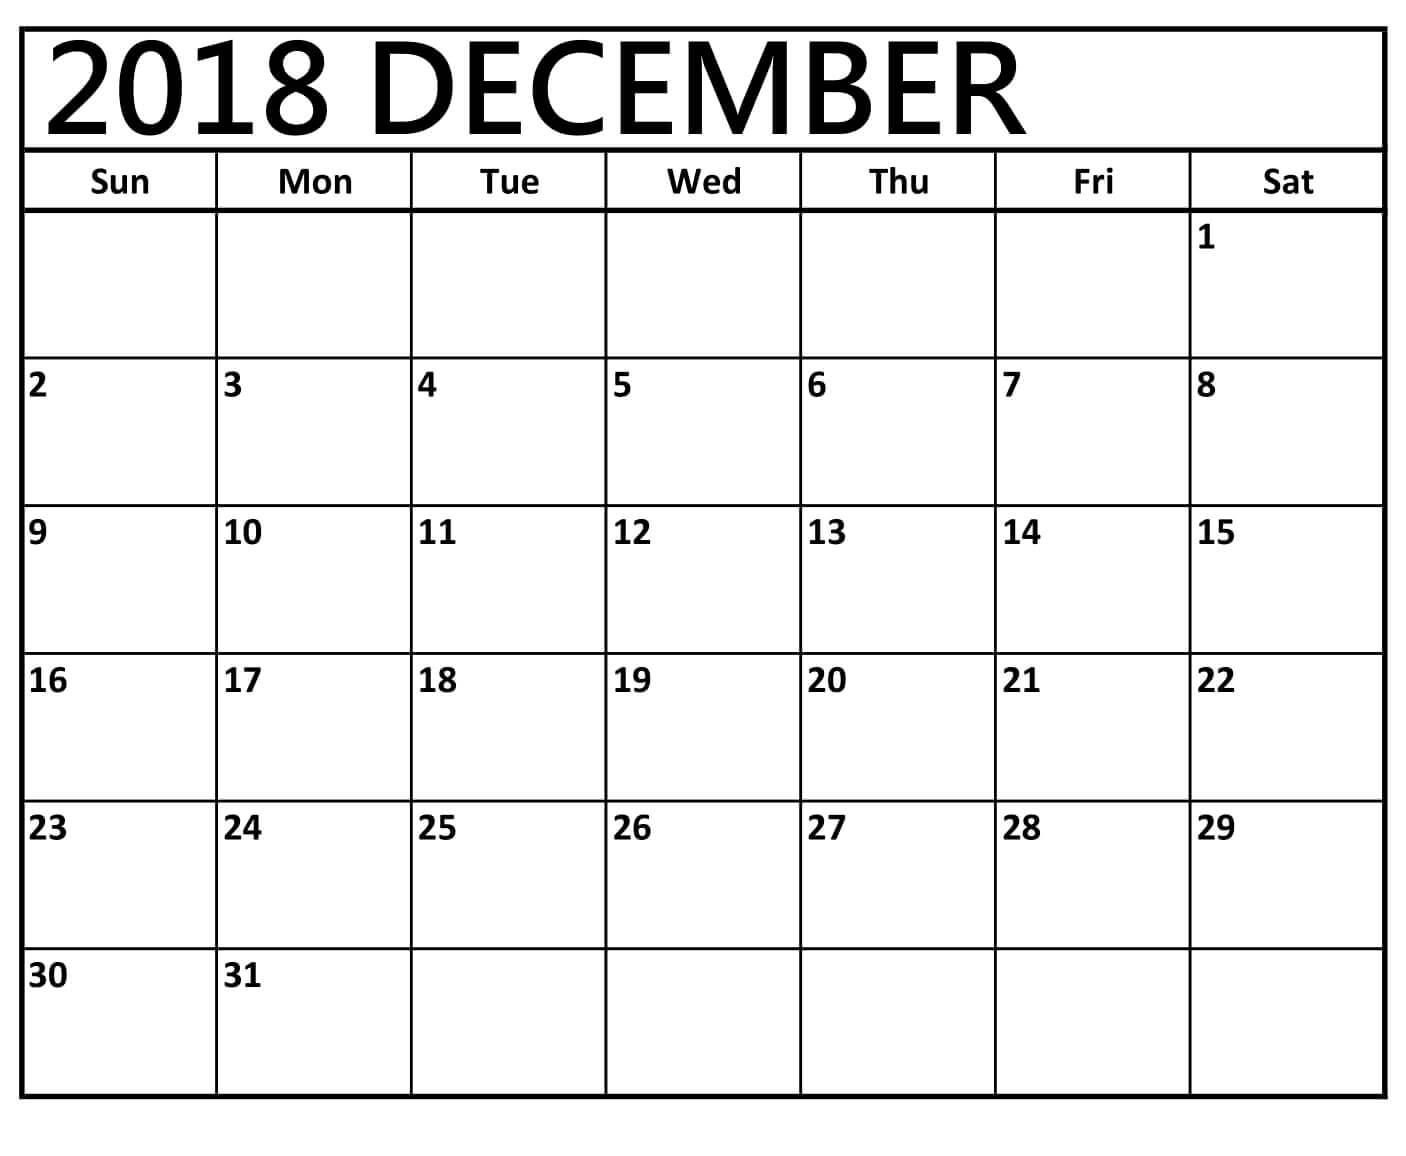 December 2018 Printable Calendar To Do List | March Calendar